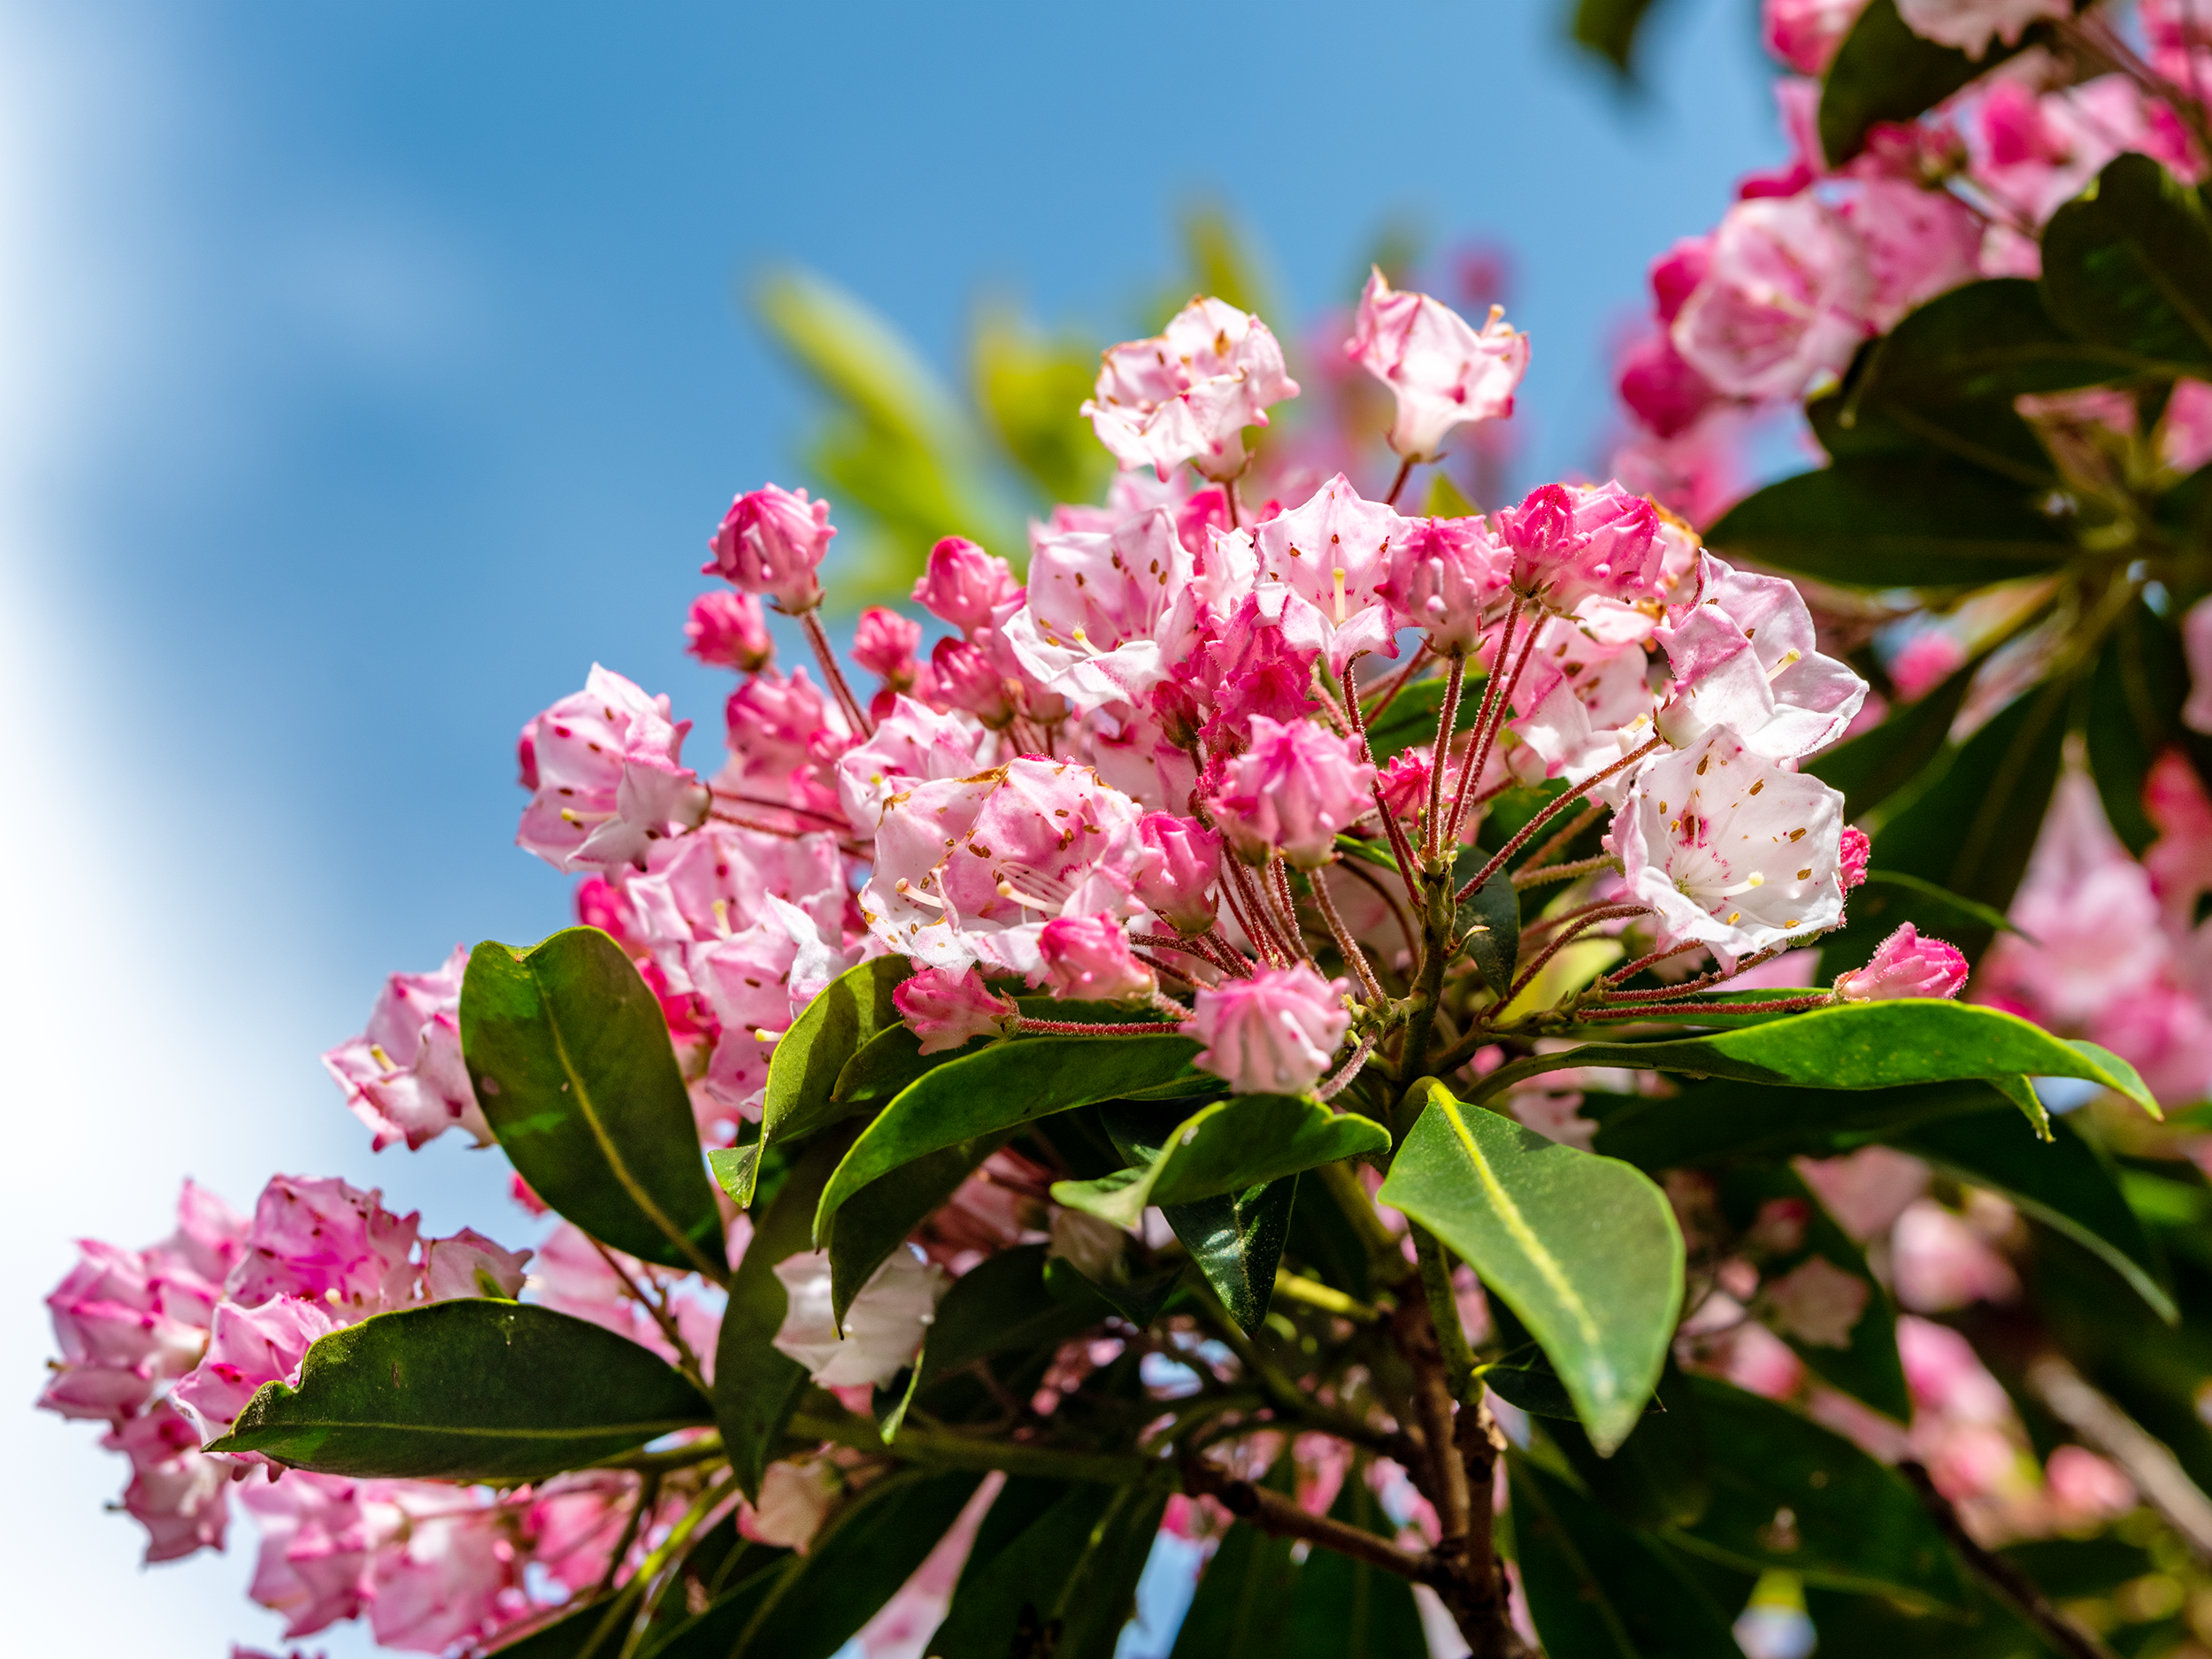 In early June, the Catawba Rhododendron is blooming, creating a spectacular mountain-sized bouquet of color.